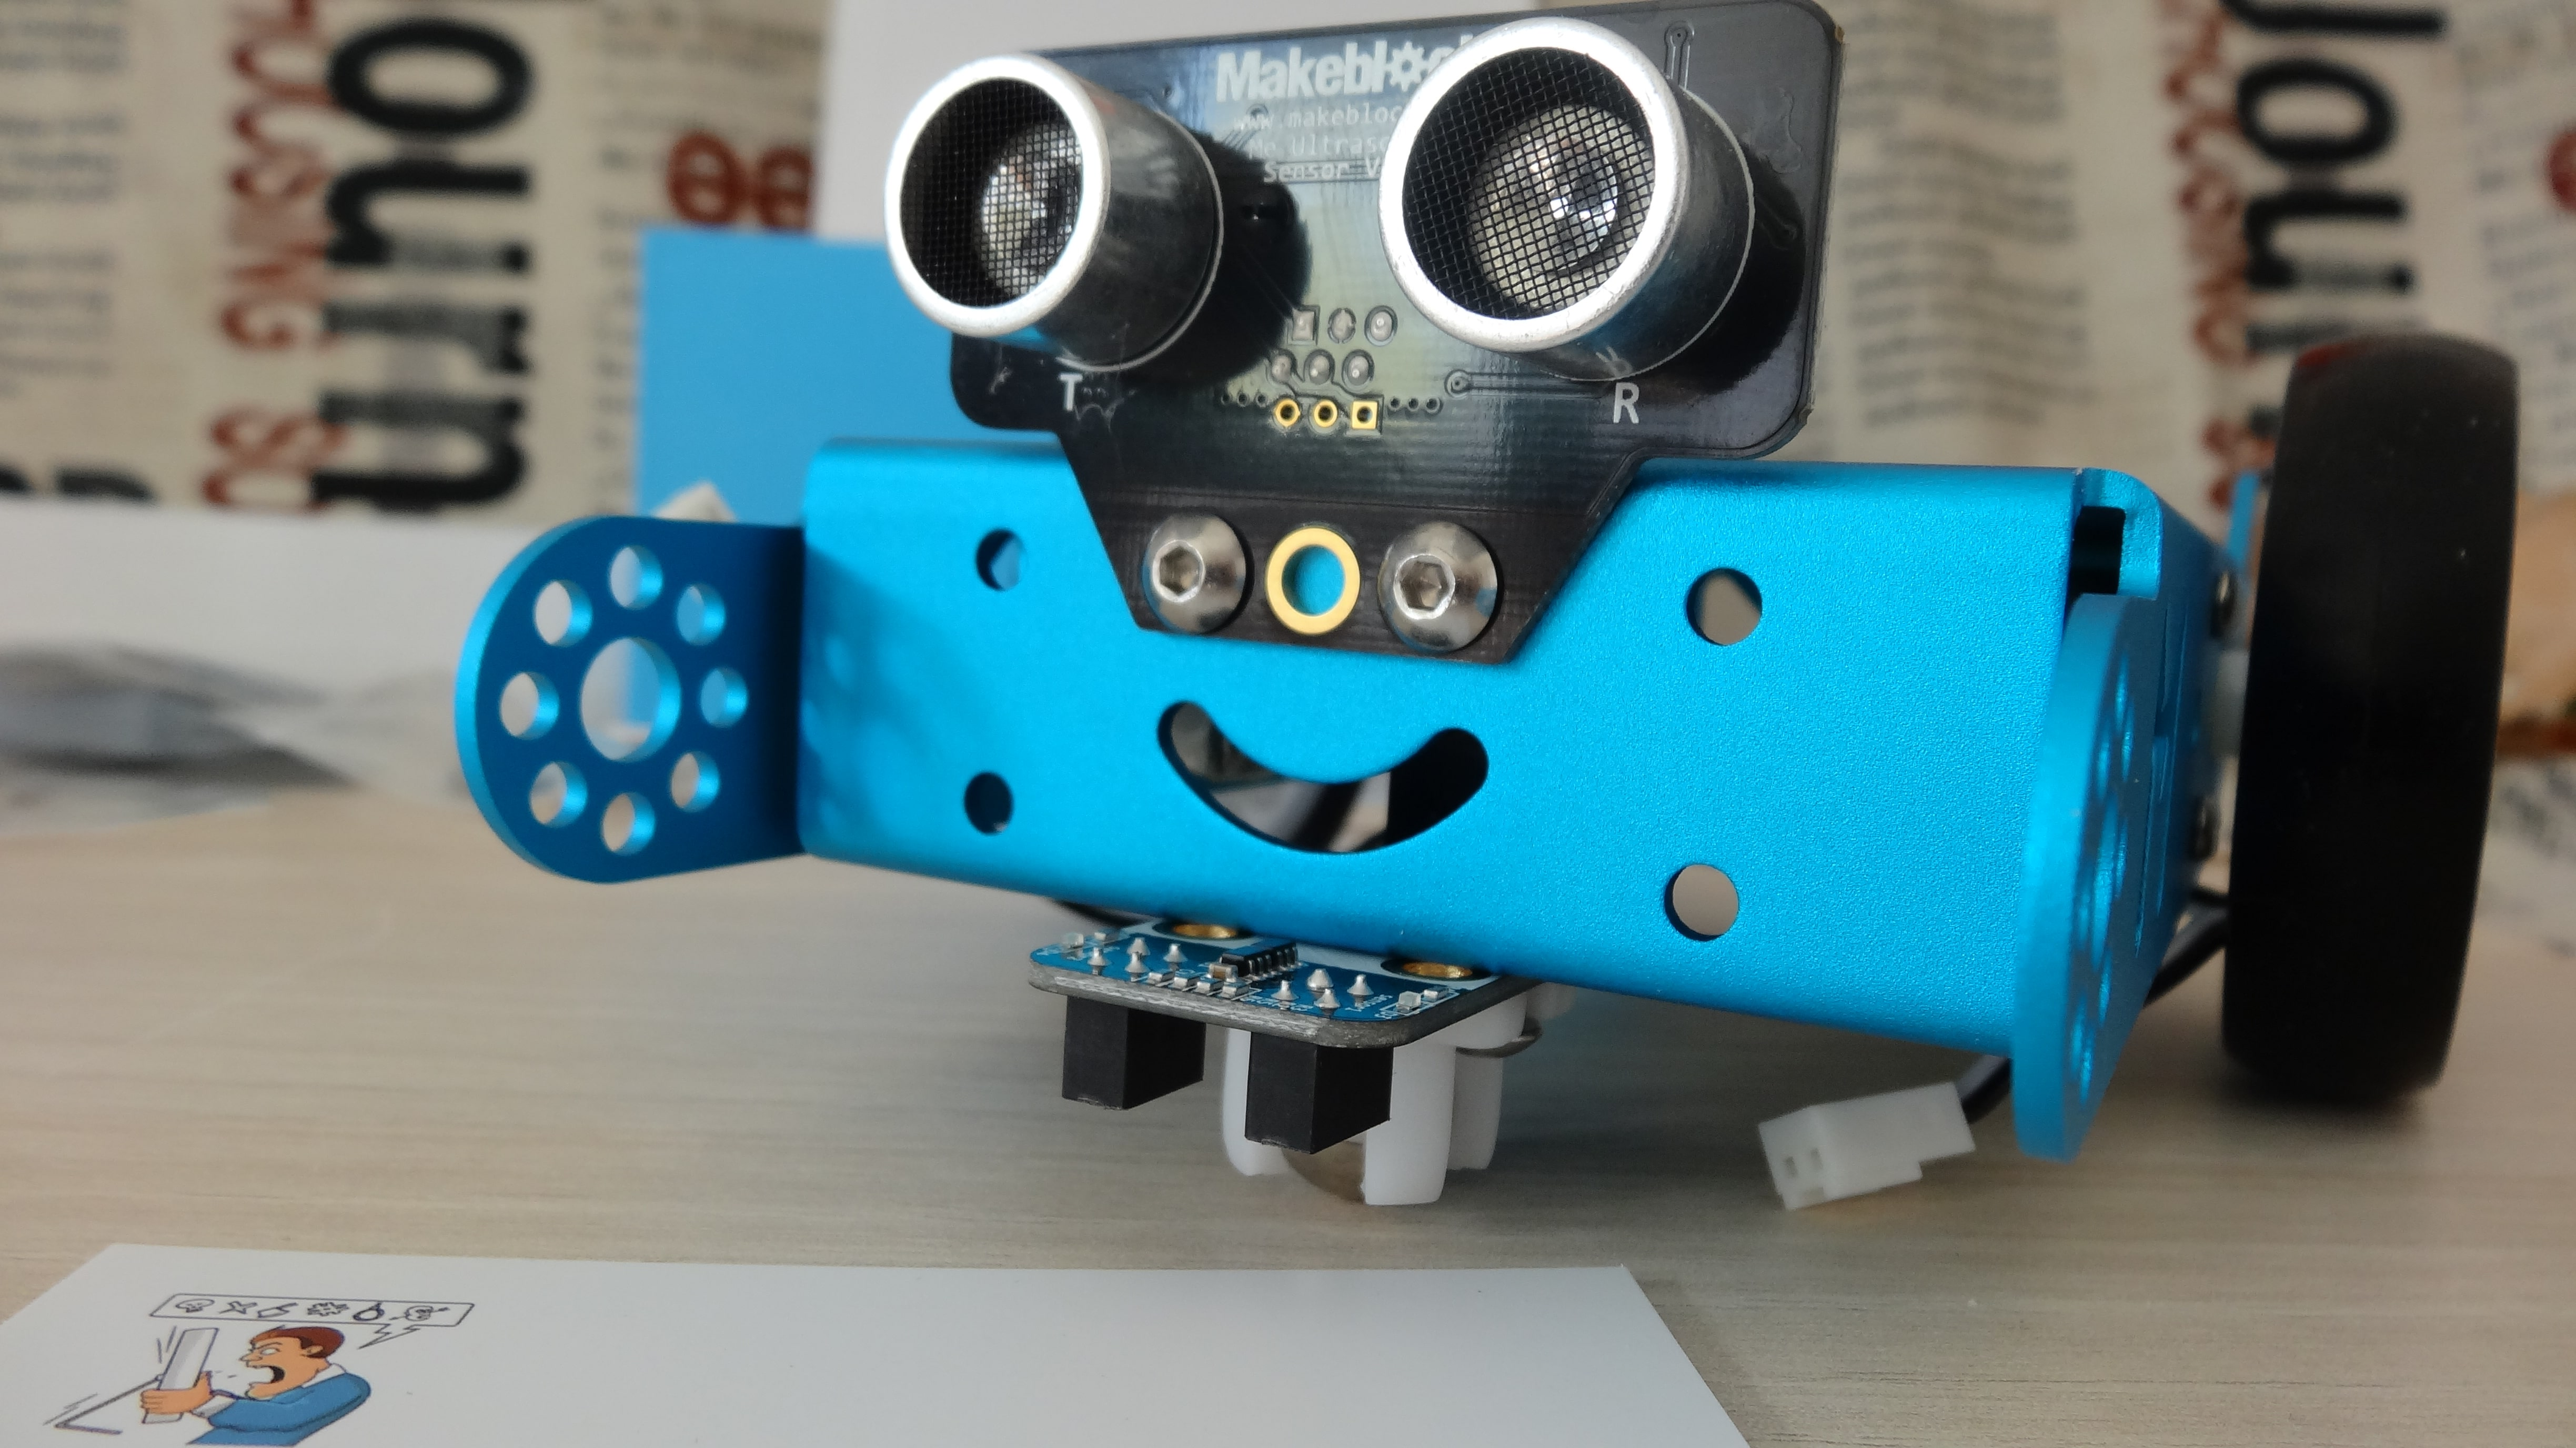 mbot-blue-un-robot-educatif-et-programmable-en-version-2-4-g-tres-interessant-legaragedupc-fr-23